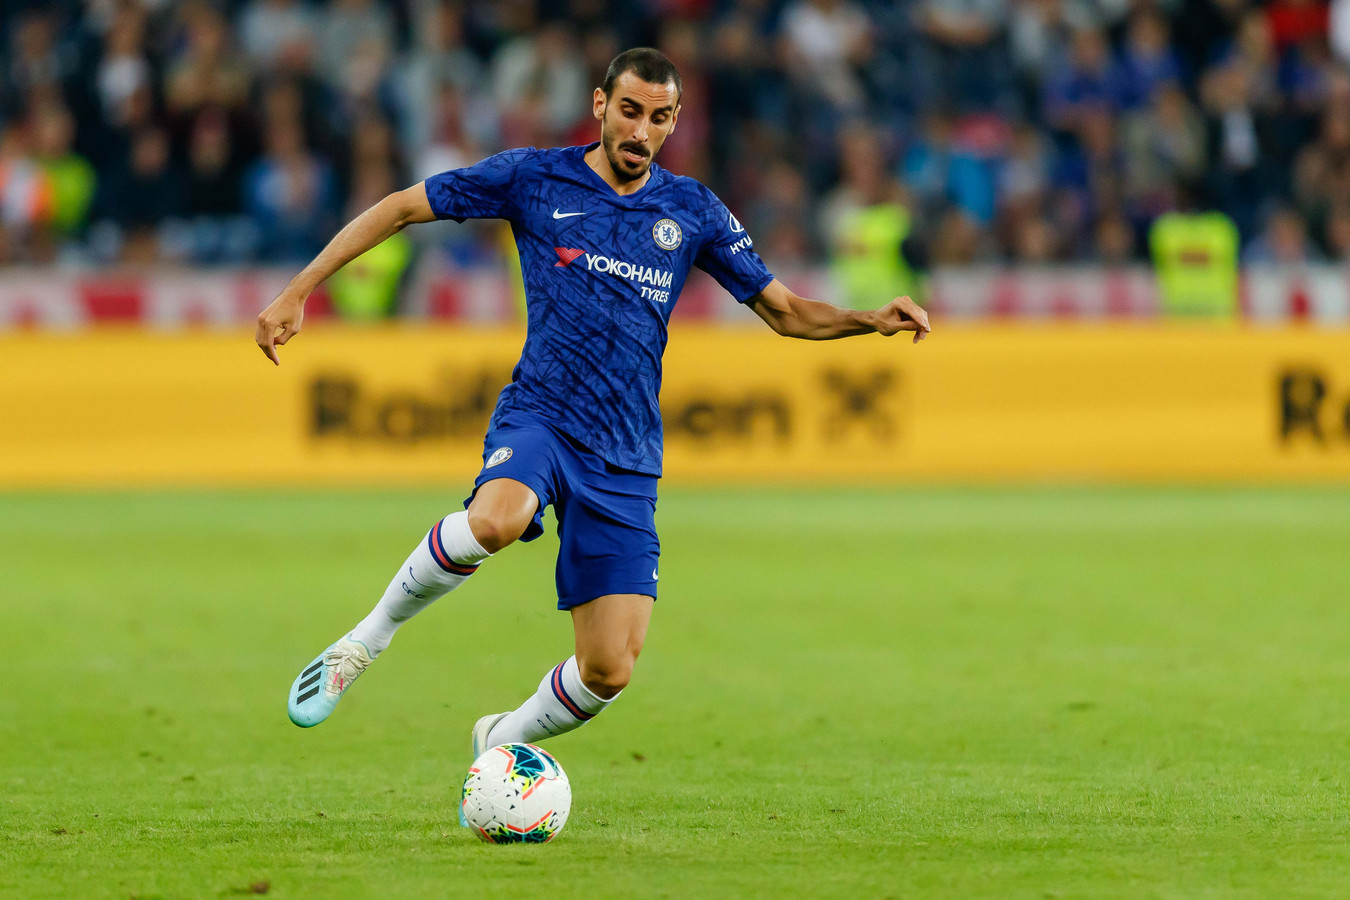 SALZBURG, AUSTRIA - JULY 31: Davide Zappacosta of FC Chelsea controls the ball during the pre-season friendly match between RB Salzburg and FC Chelsea at Red Bull Arena on July 31, 2019 in Salzburg, Austria. (Photo by TF-Images/Getty Images)